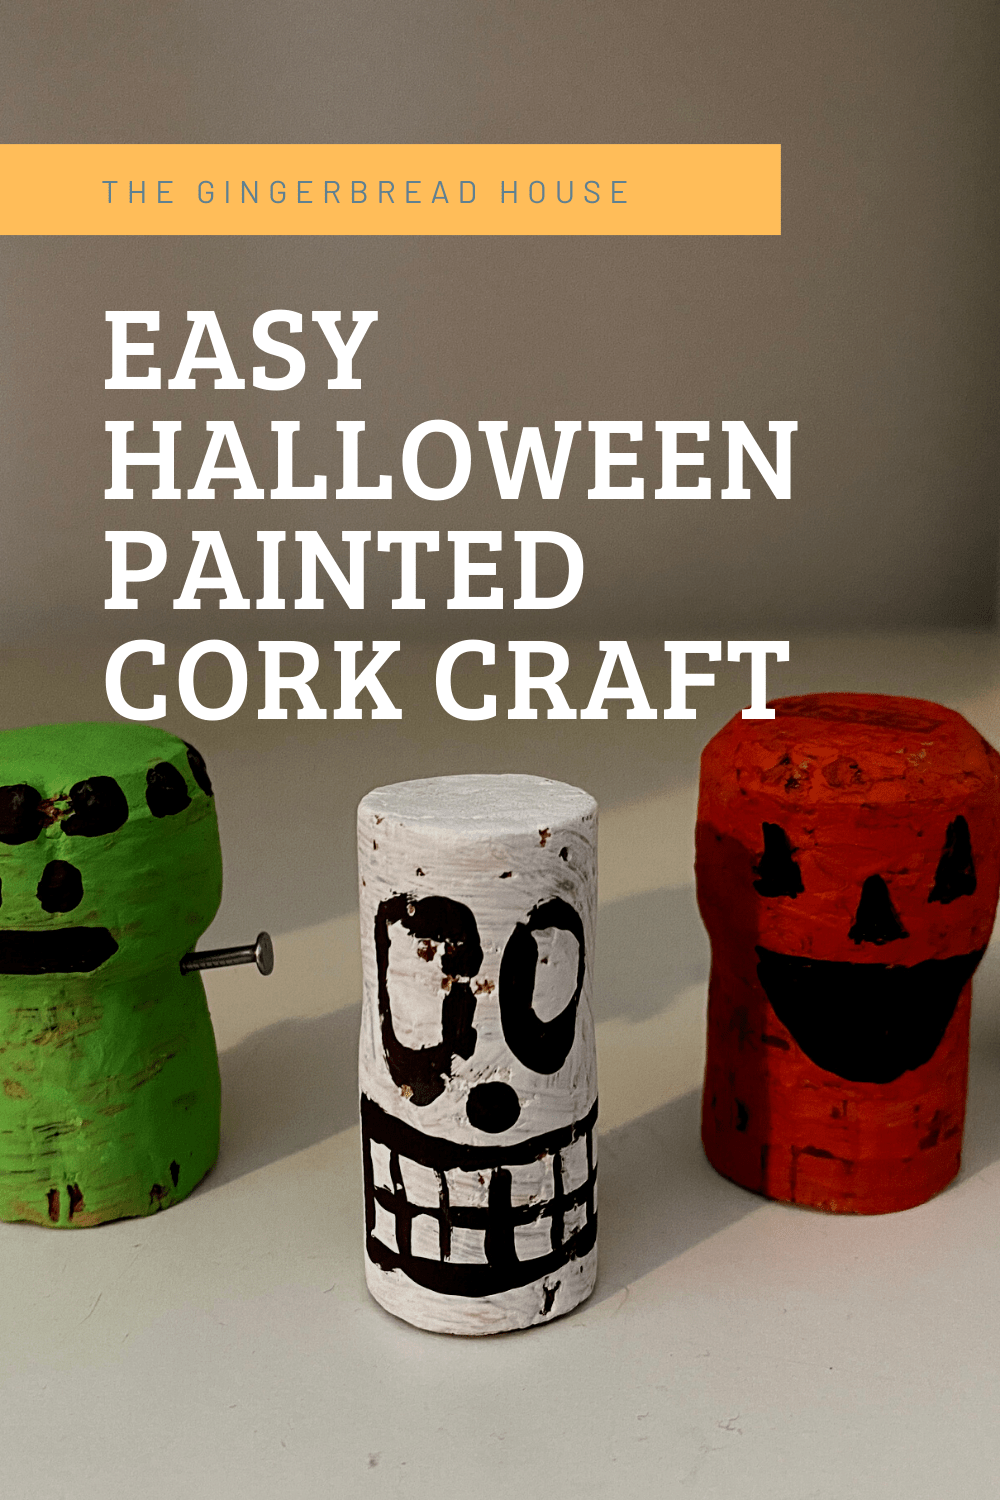 Easy Halloween painted cork craft